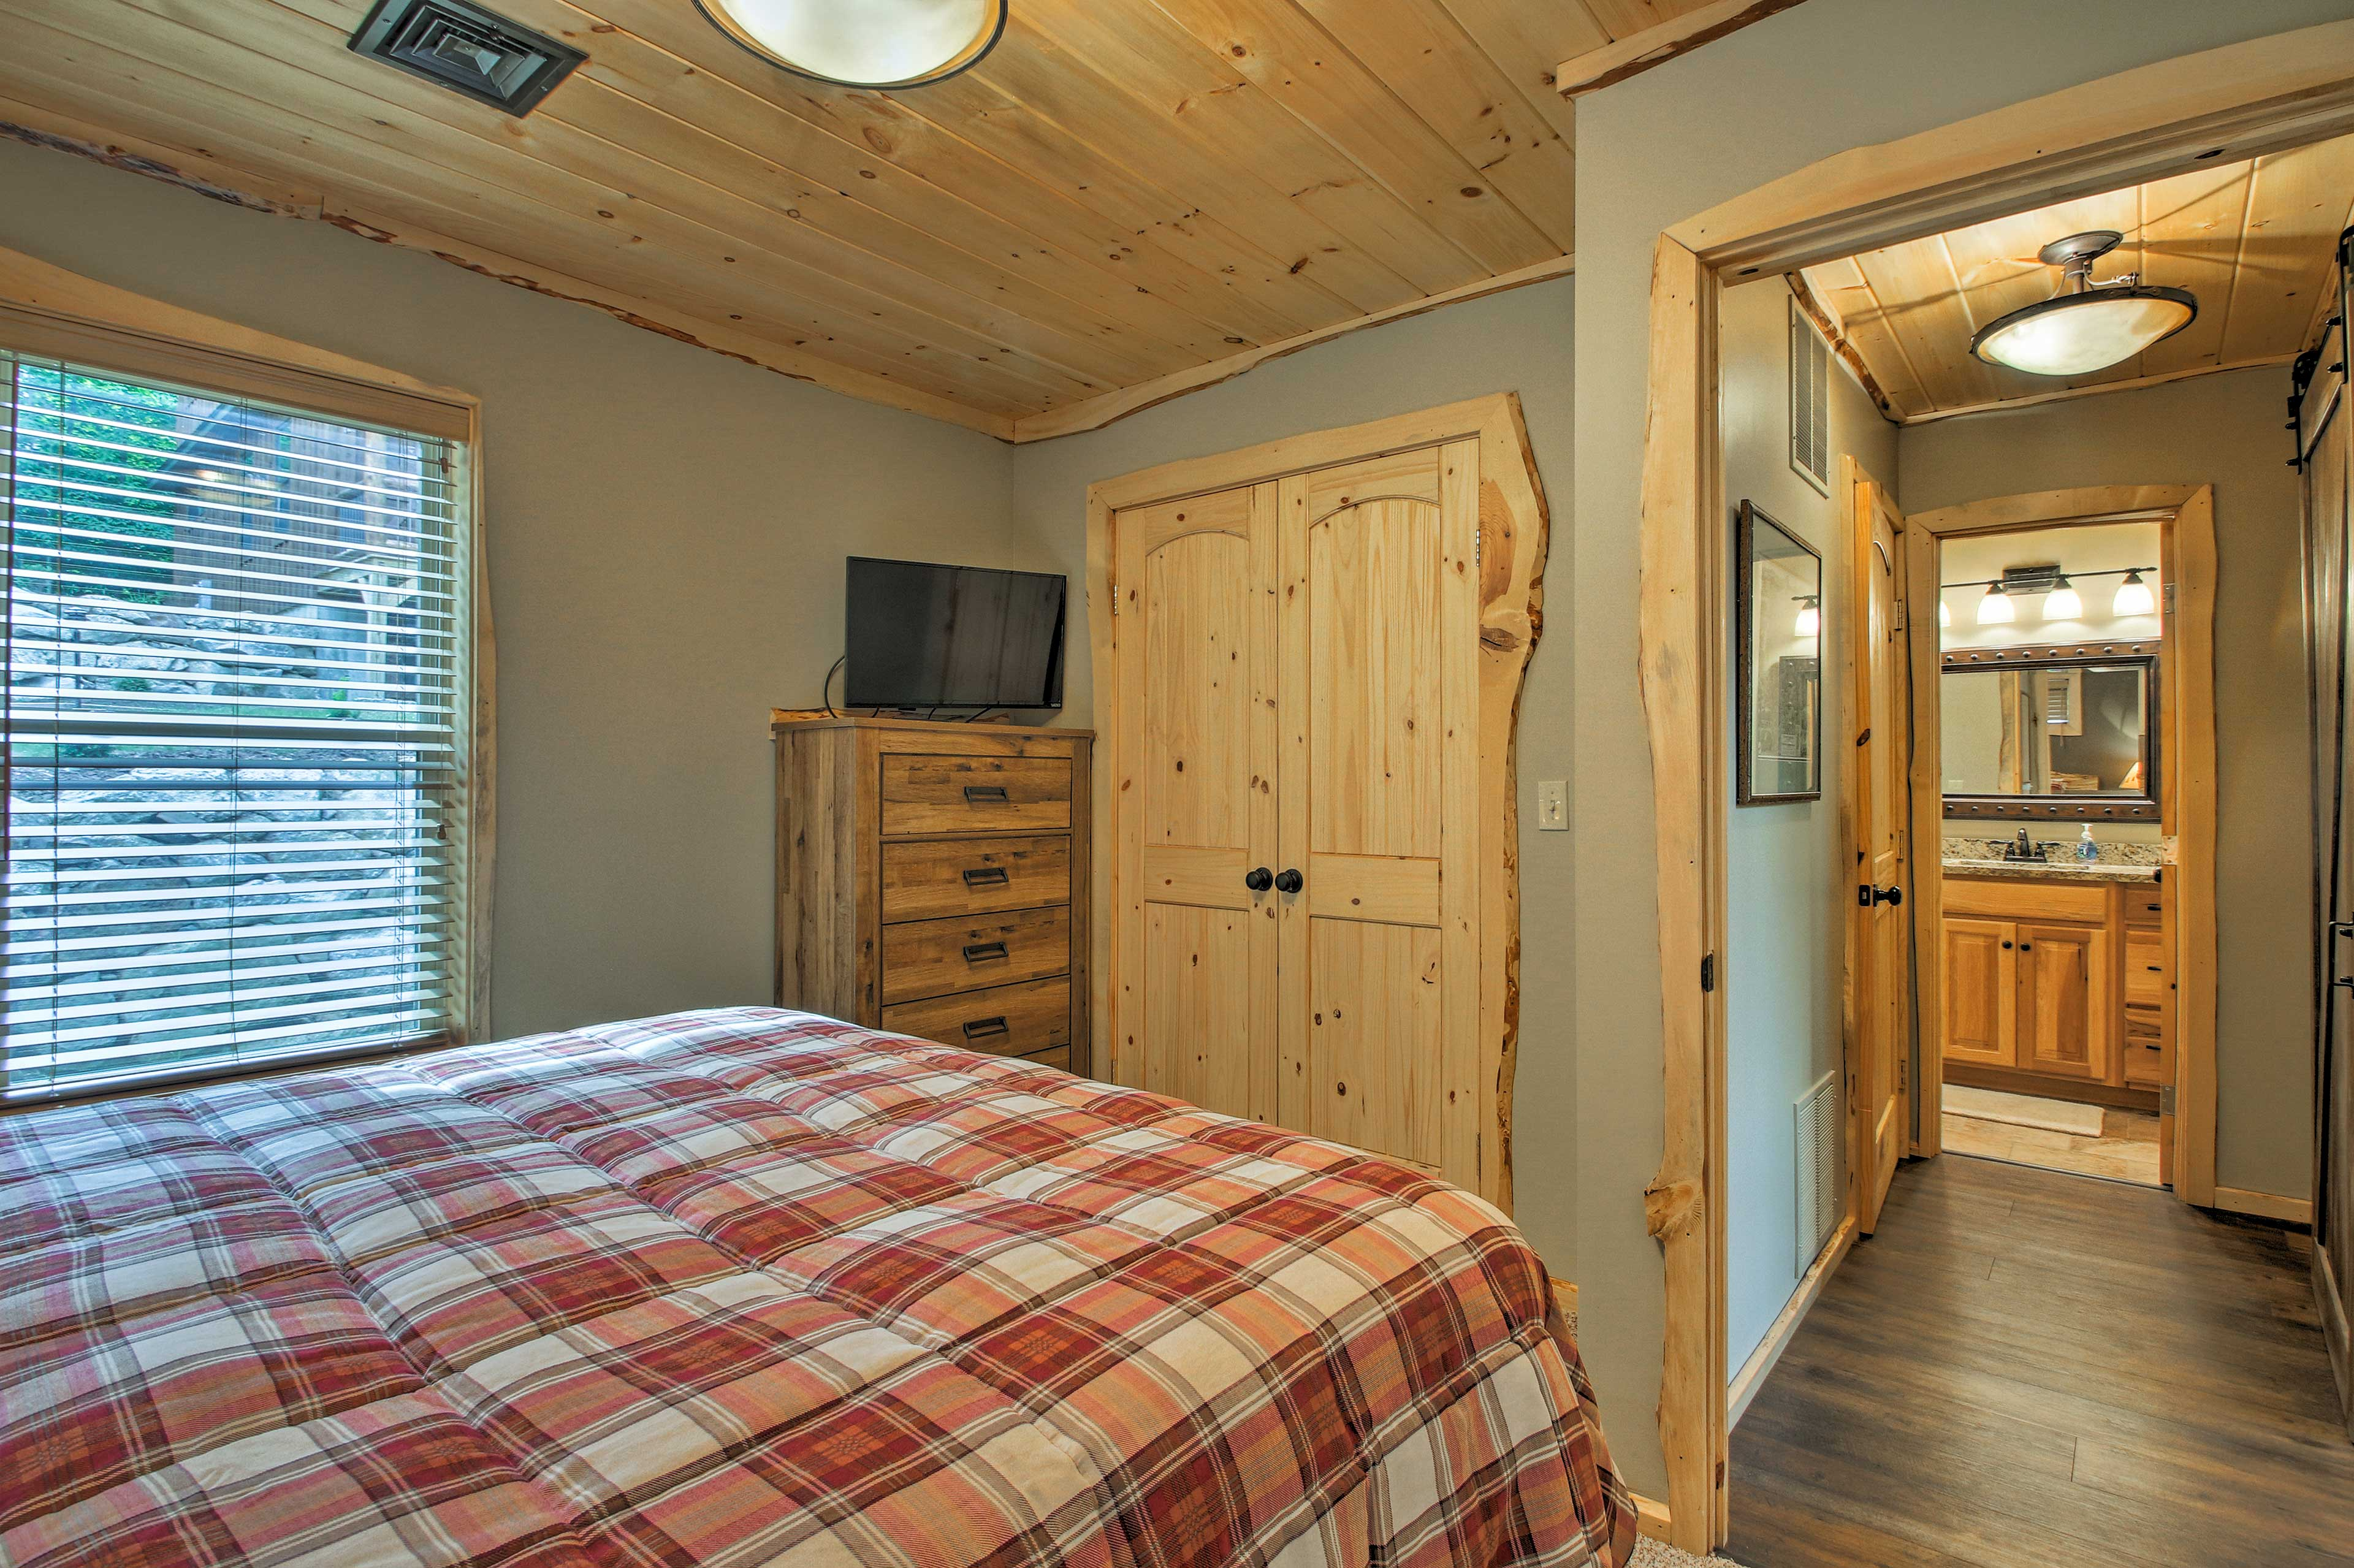 Doze off while watching shows from the comfort of the queen bed.